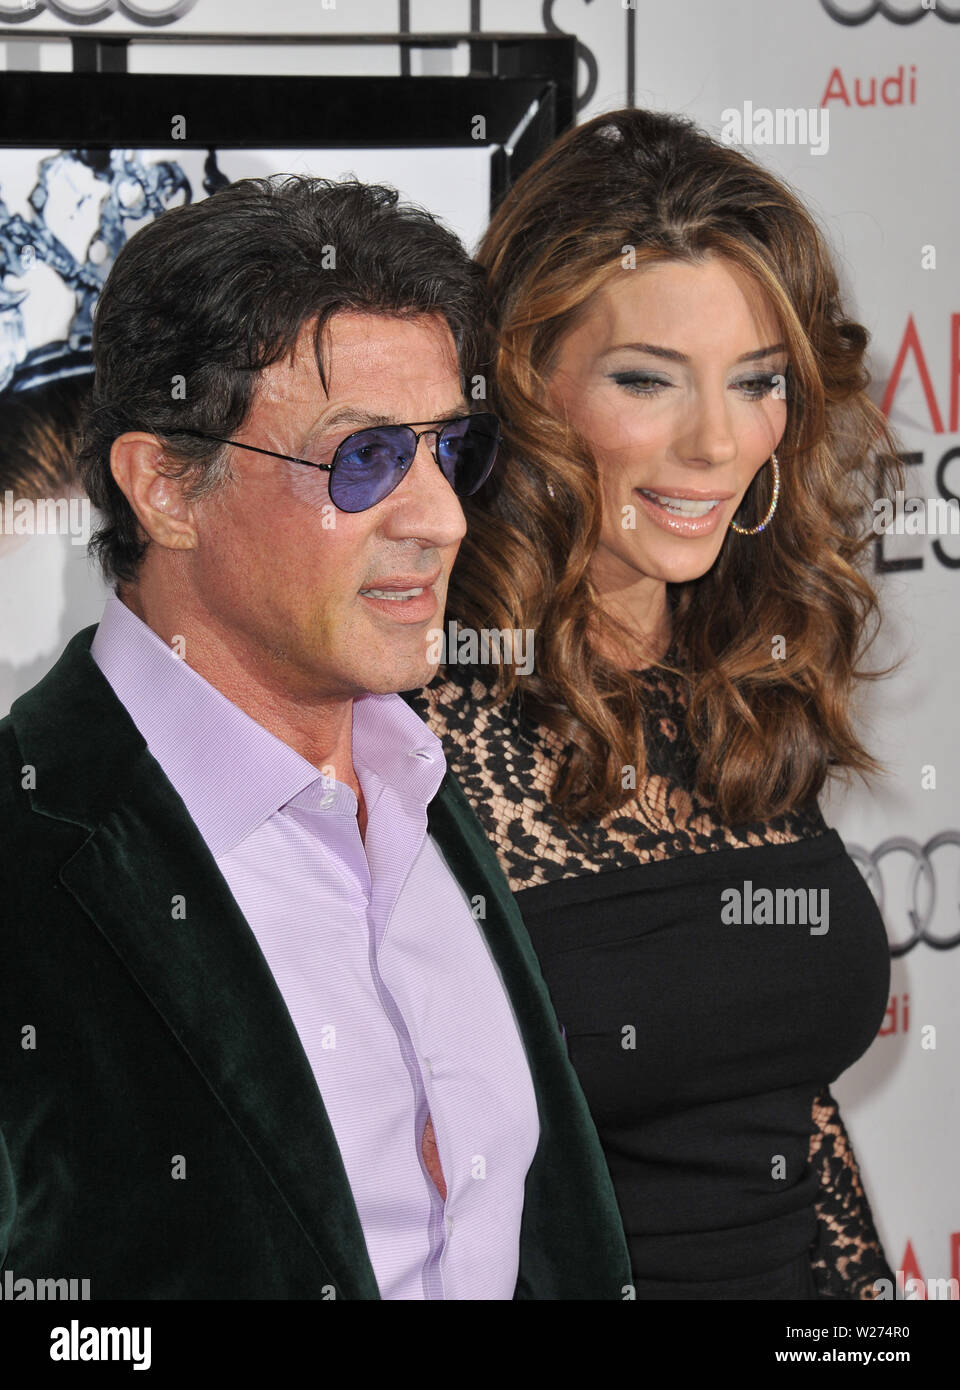 LOS ANGELES, CA. November 11, 2010: Sylvester Stallone & wife Jennifer Flavin at the Los Angeles premiere of 'Black Swan', the closing film of the 2010 AFI Fest, at Grauman's Chinese Theatre, Hollywood. © 2010 Paul Smith / Featureflash - Stock Image